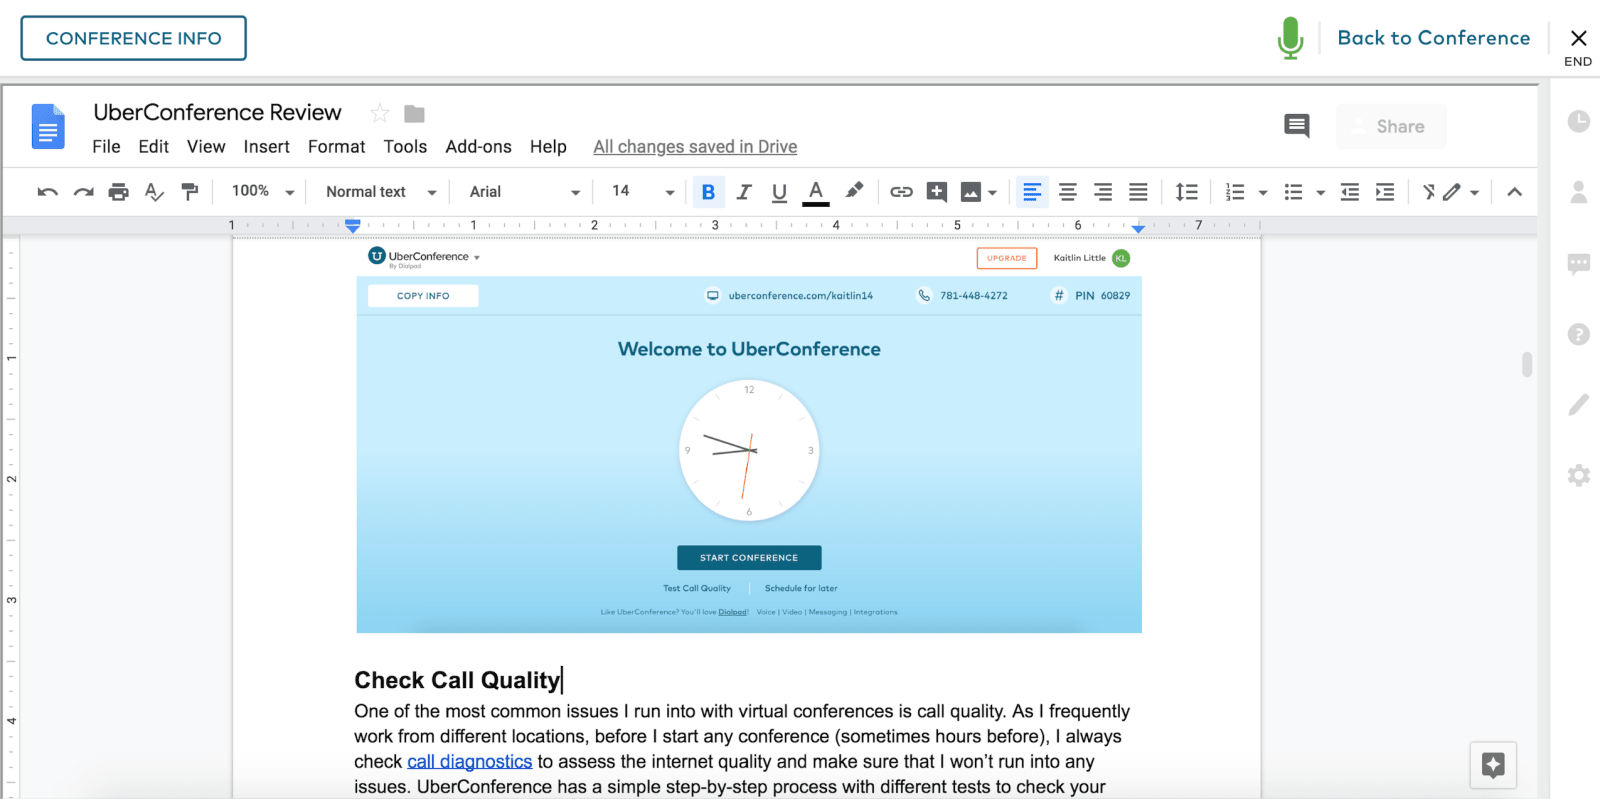 UberConference Review G Suite Integration Example